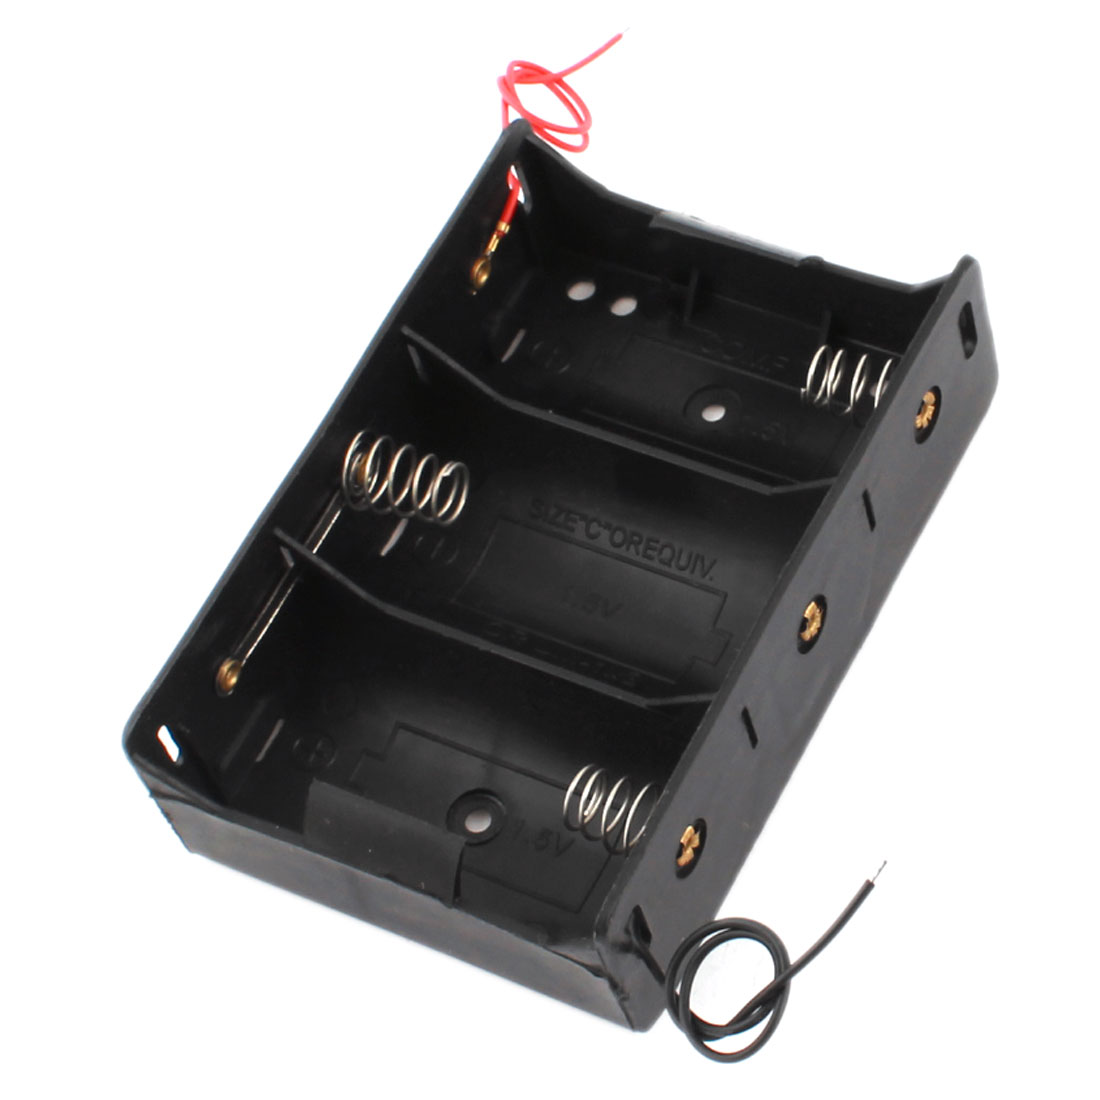 Spring Loaded Black Plastic 3 x 1.5V Size D Battery Case Holder Storage